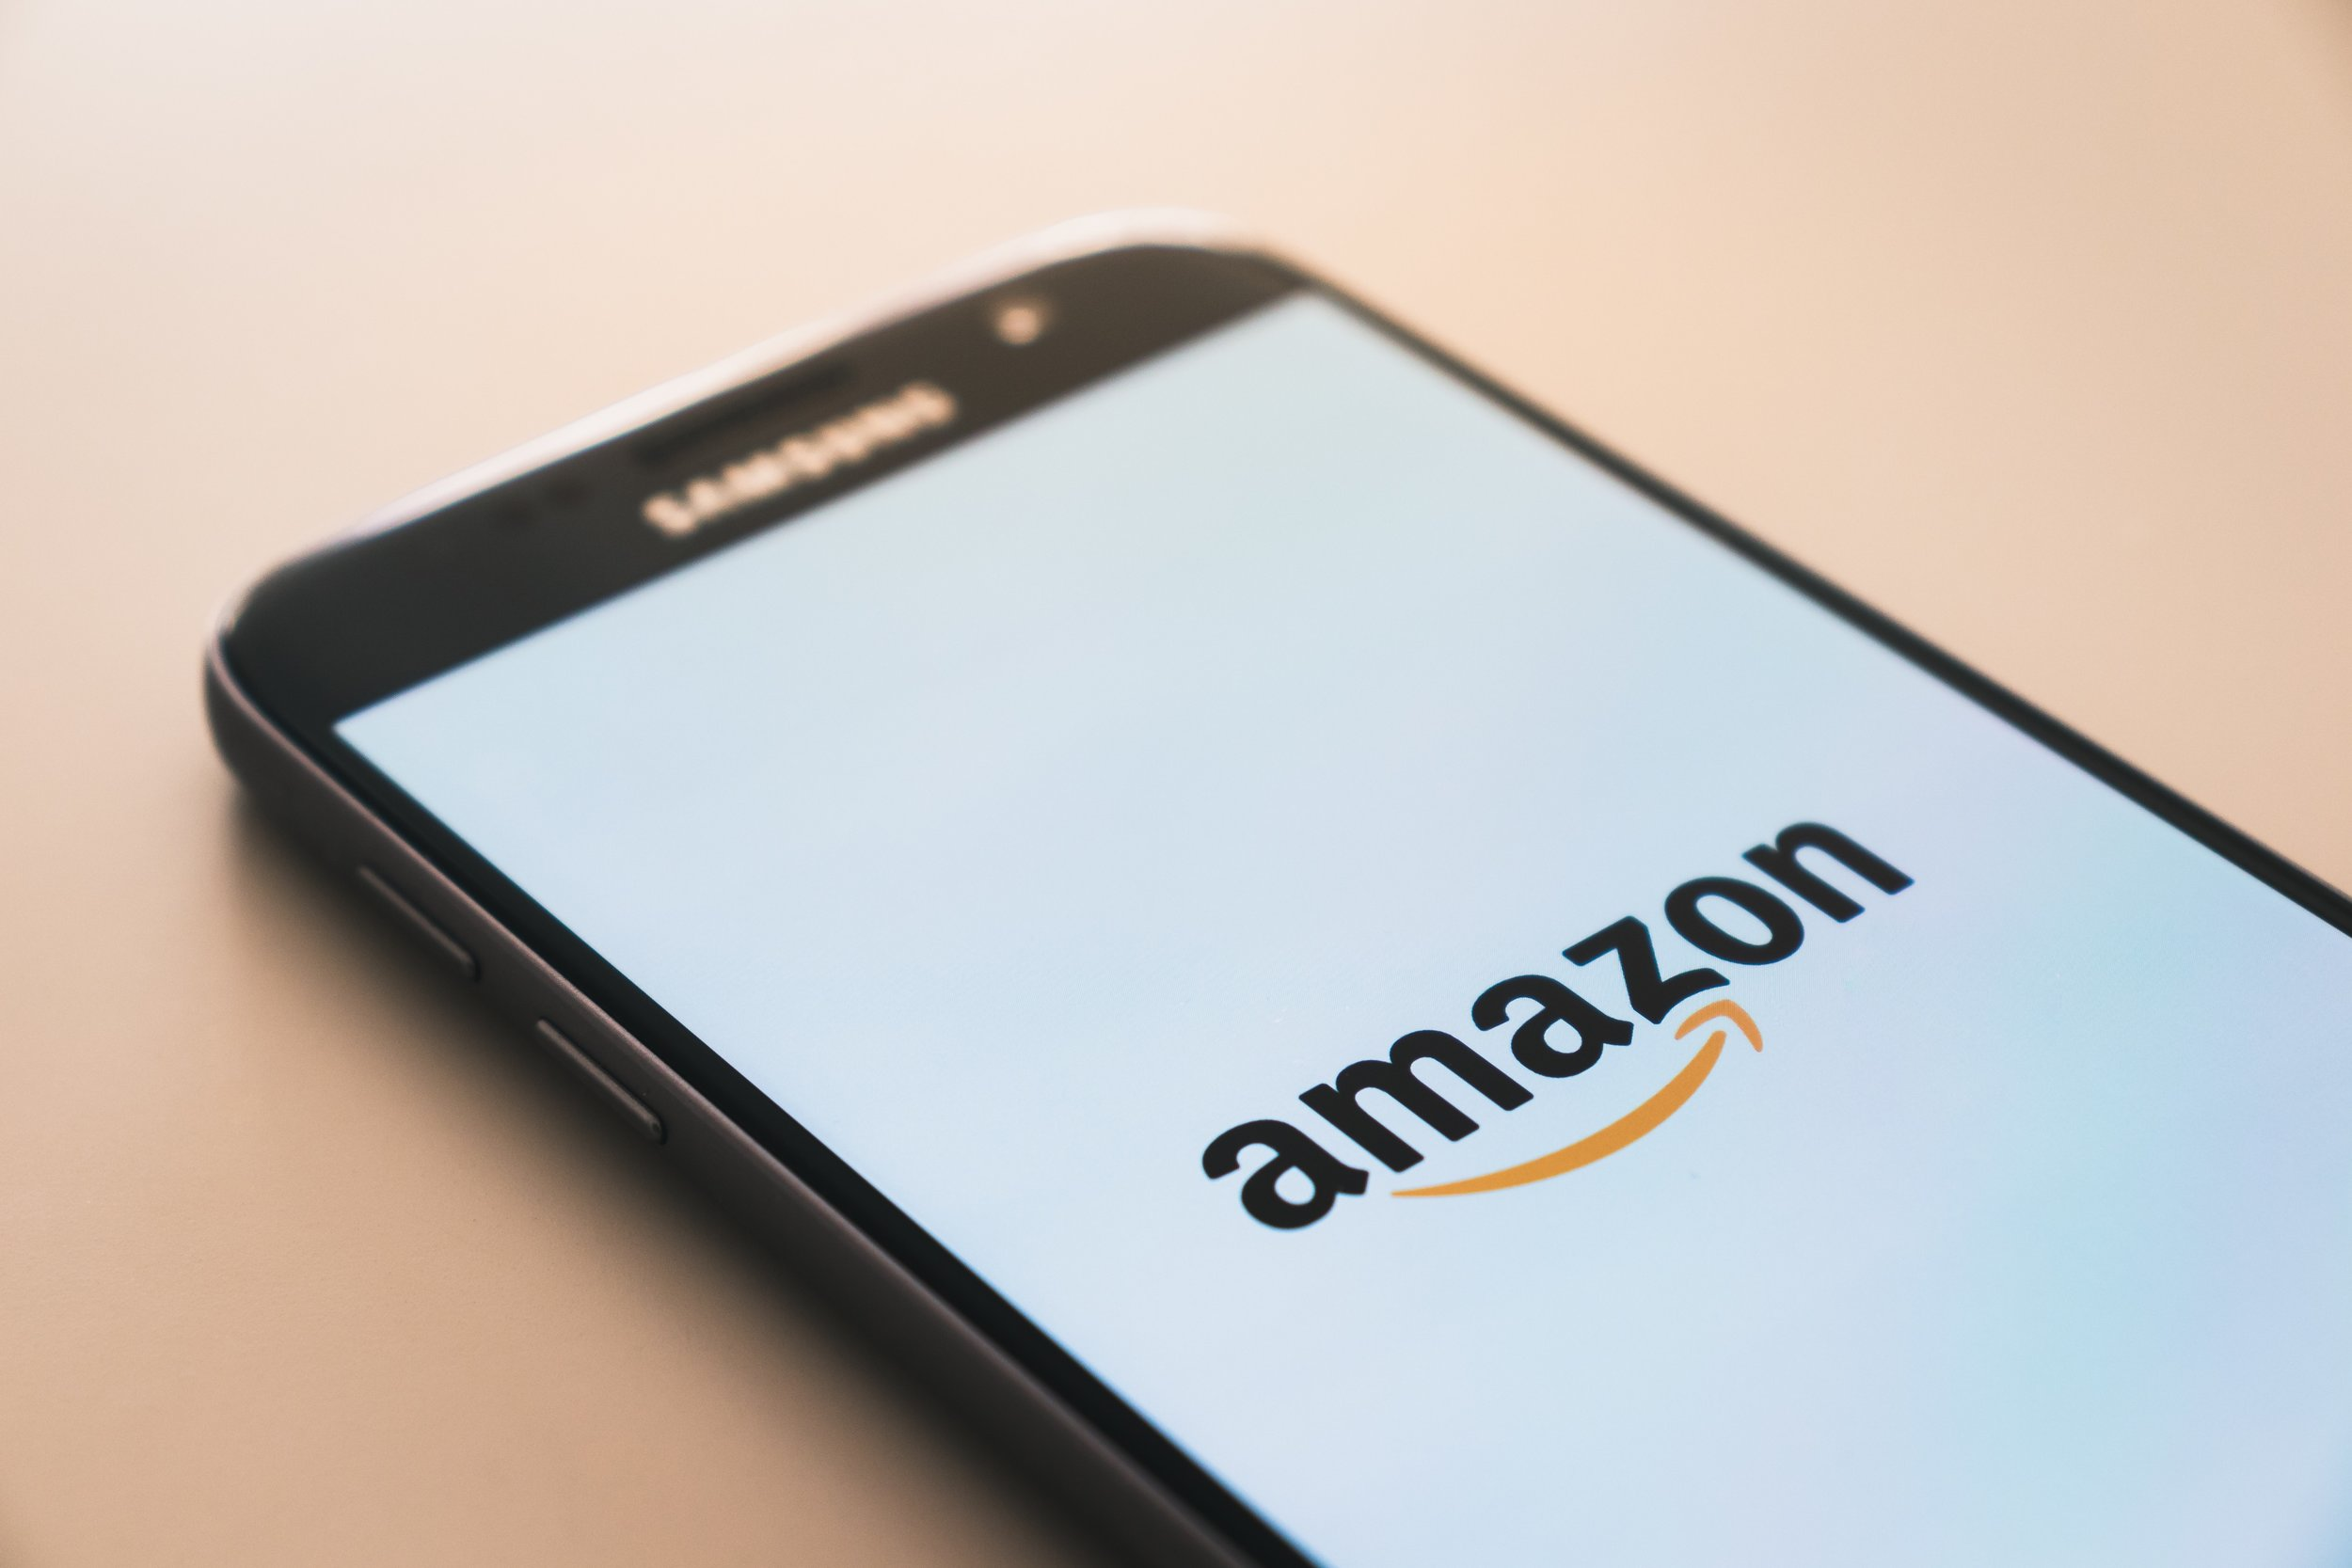 Amazon Consultants - There's no question that Amazon is the most powerful channel for ecommerce sales. Learn how we can transform your business with an optimized Amazon Seller strategy.